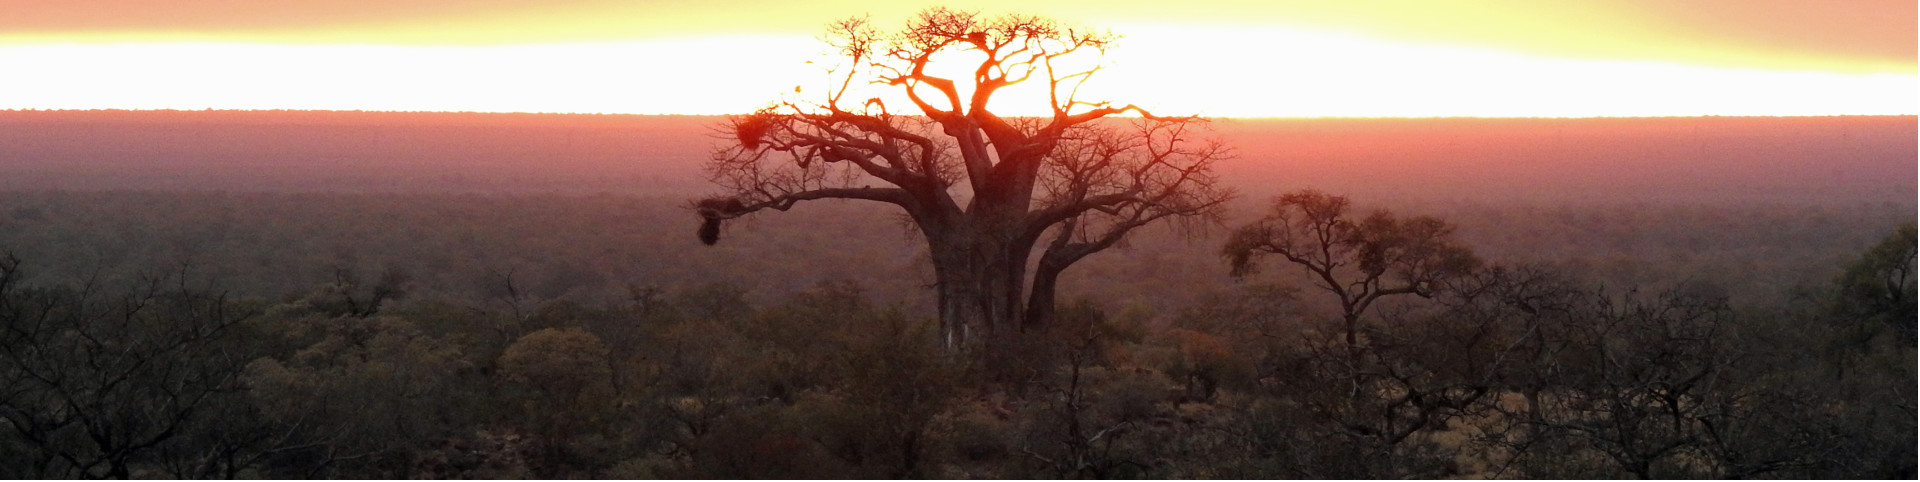 Baobab_Tree_sunrise_1920x482